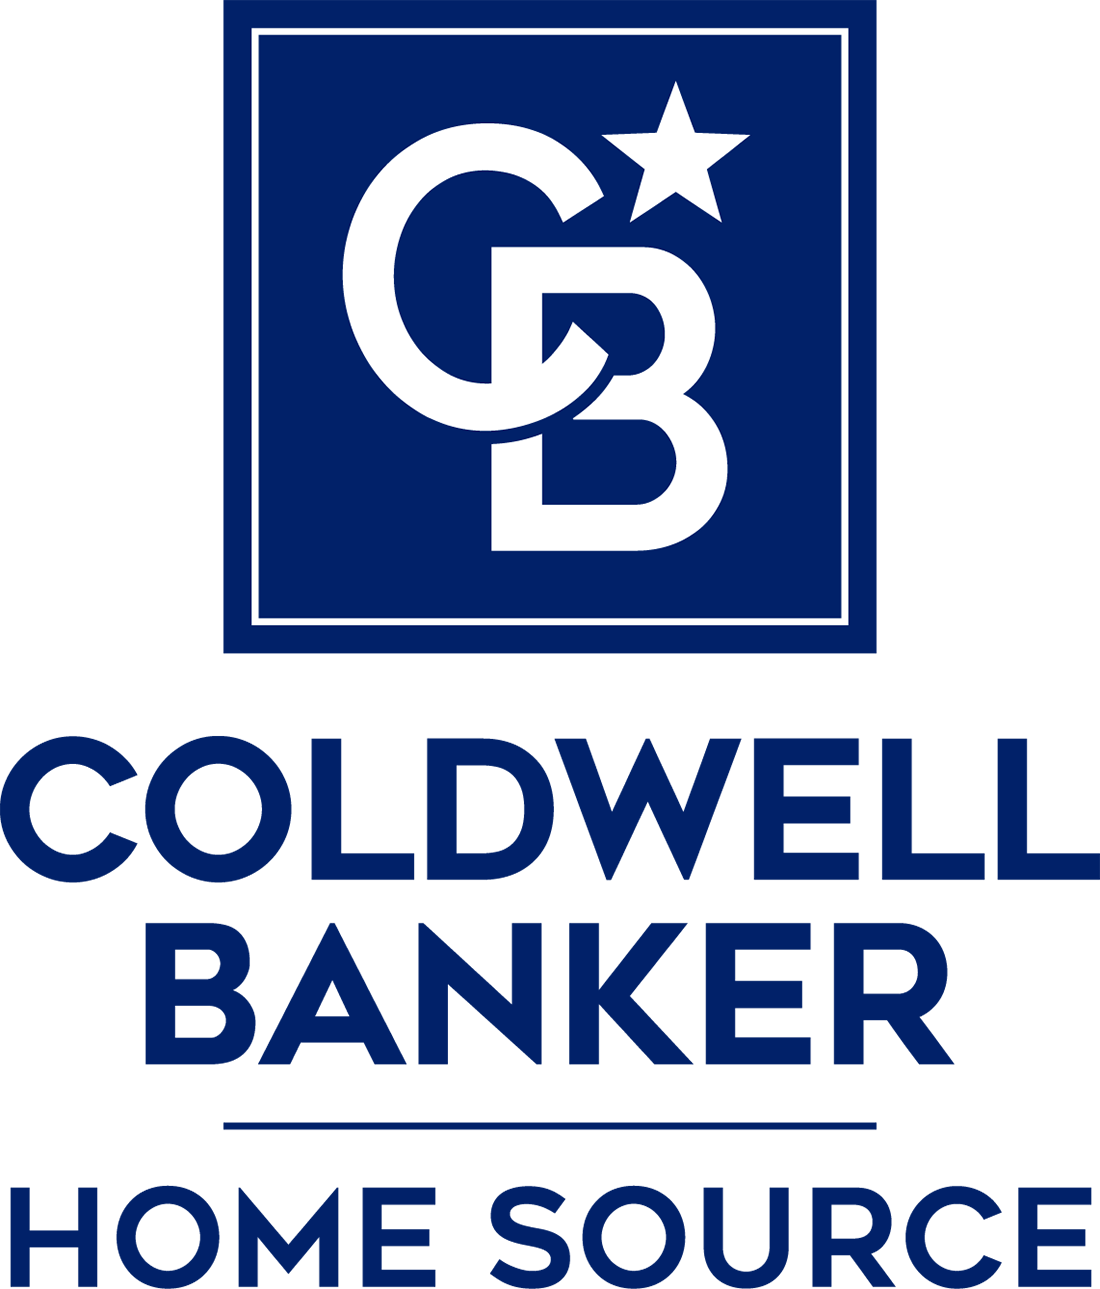 Averil Campbell - Coldwell Banker Home Source Logo